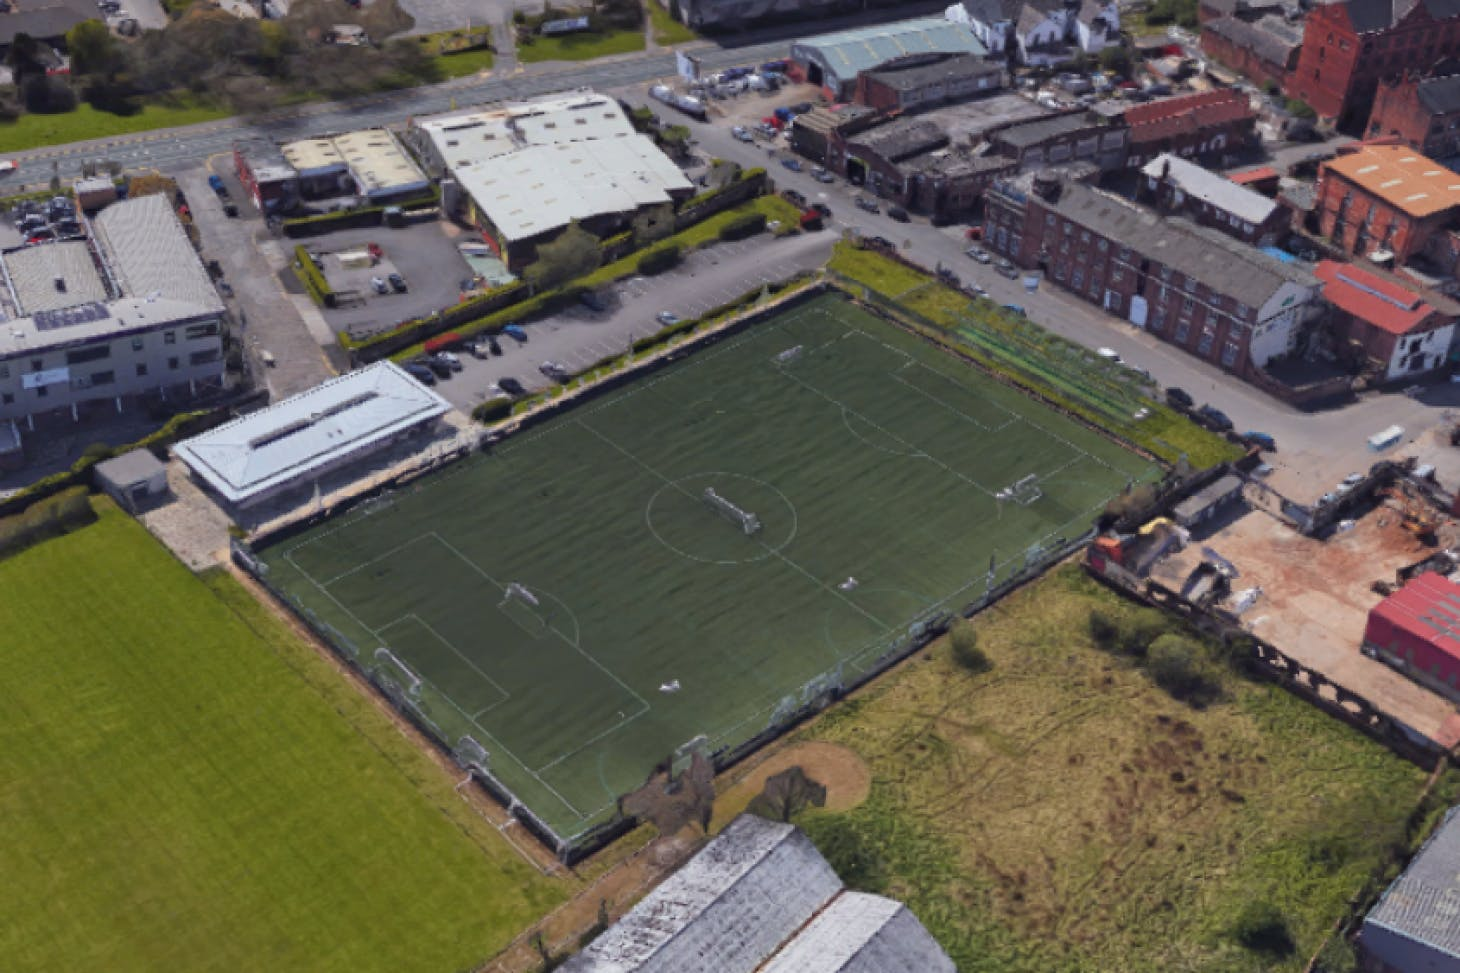 Nicholls Community Football Centre 11 a side | 3G Astroturf football pitch